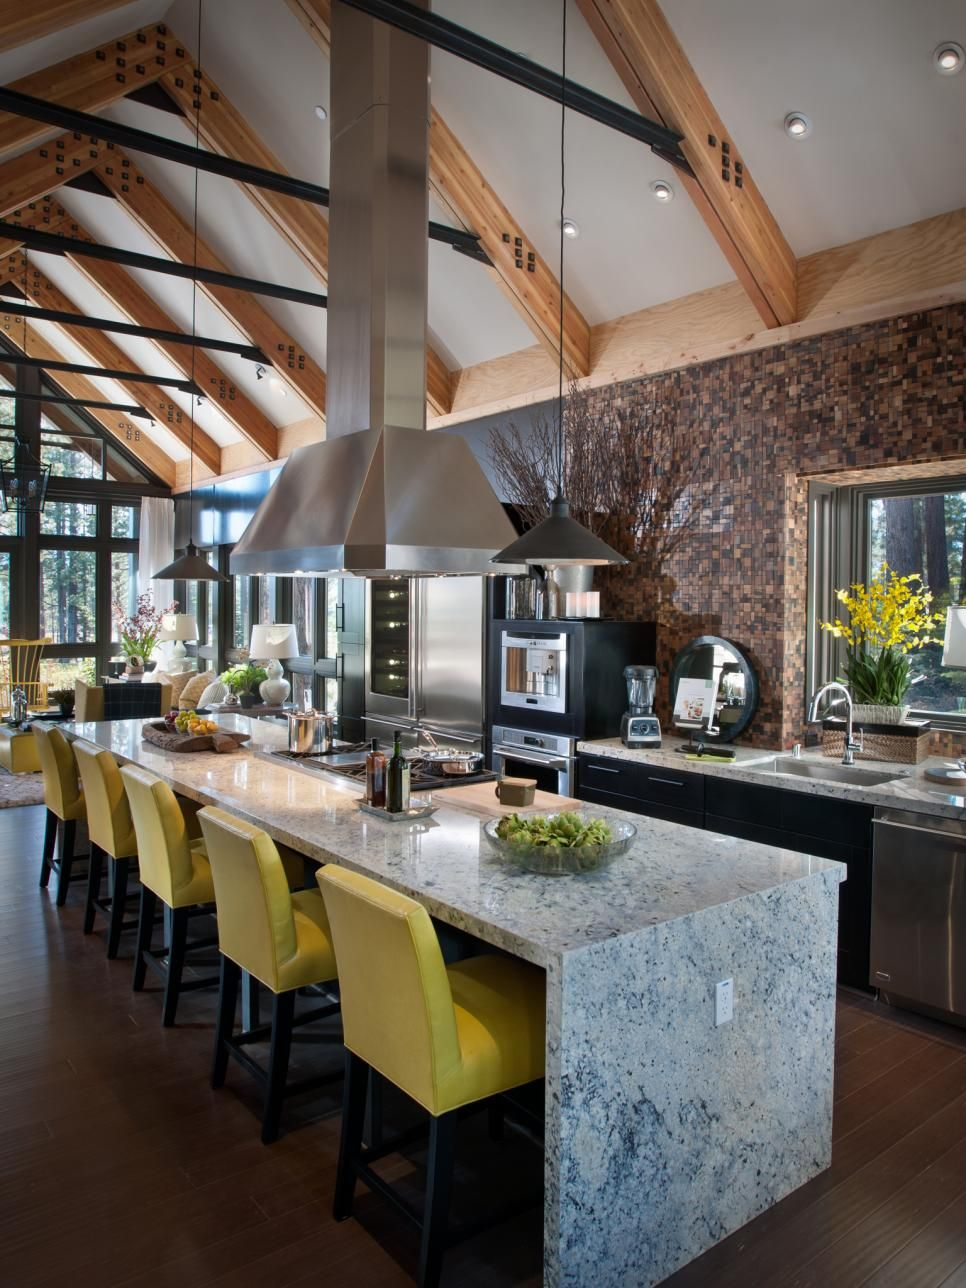 20 Dreamy Kitchen Islands | Hgtv, Shaker style cabinets and Shaker style